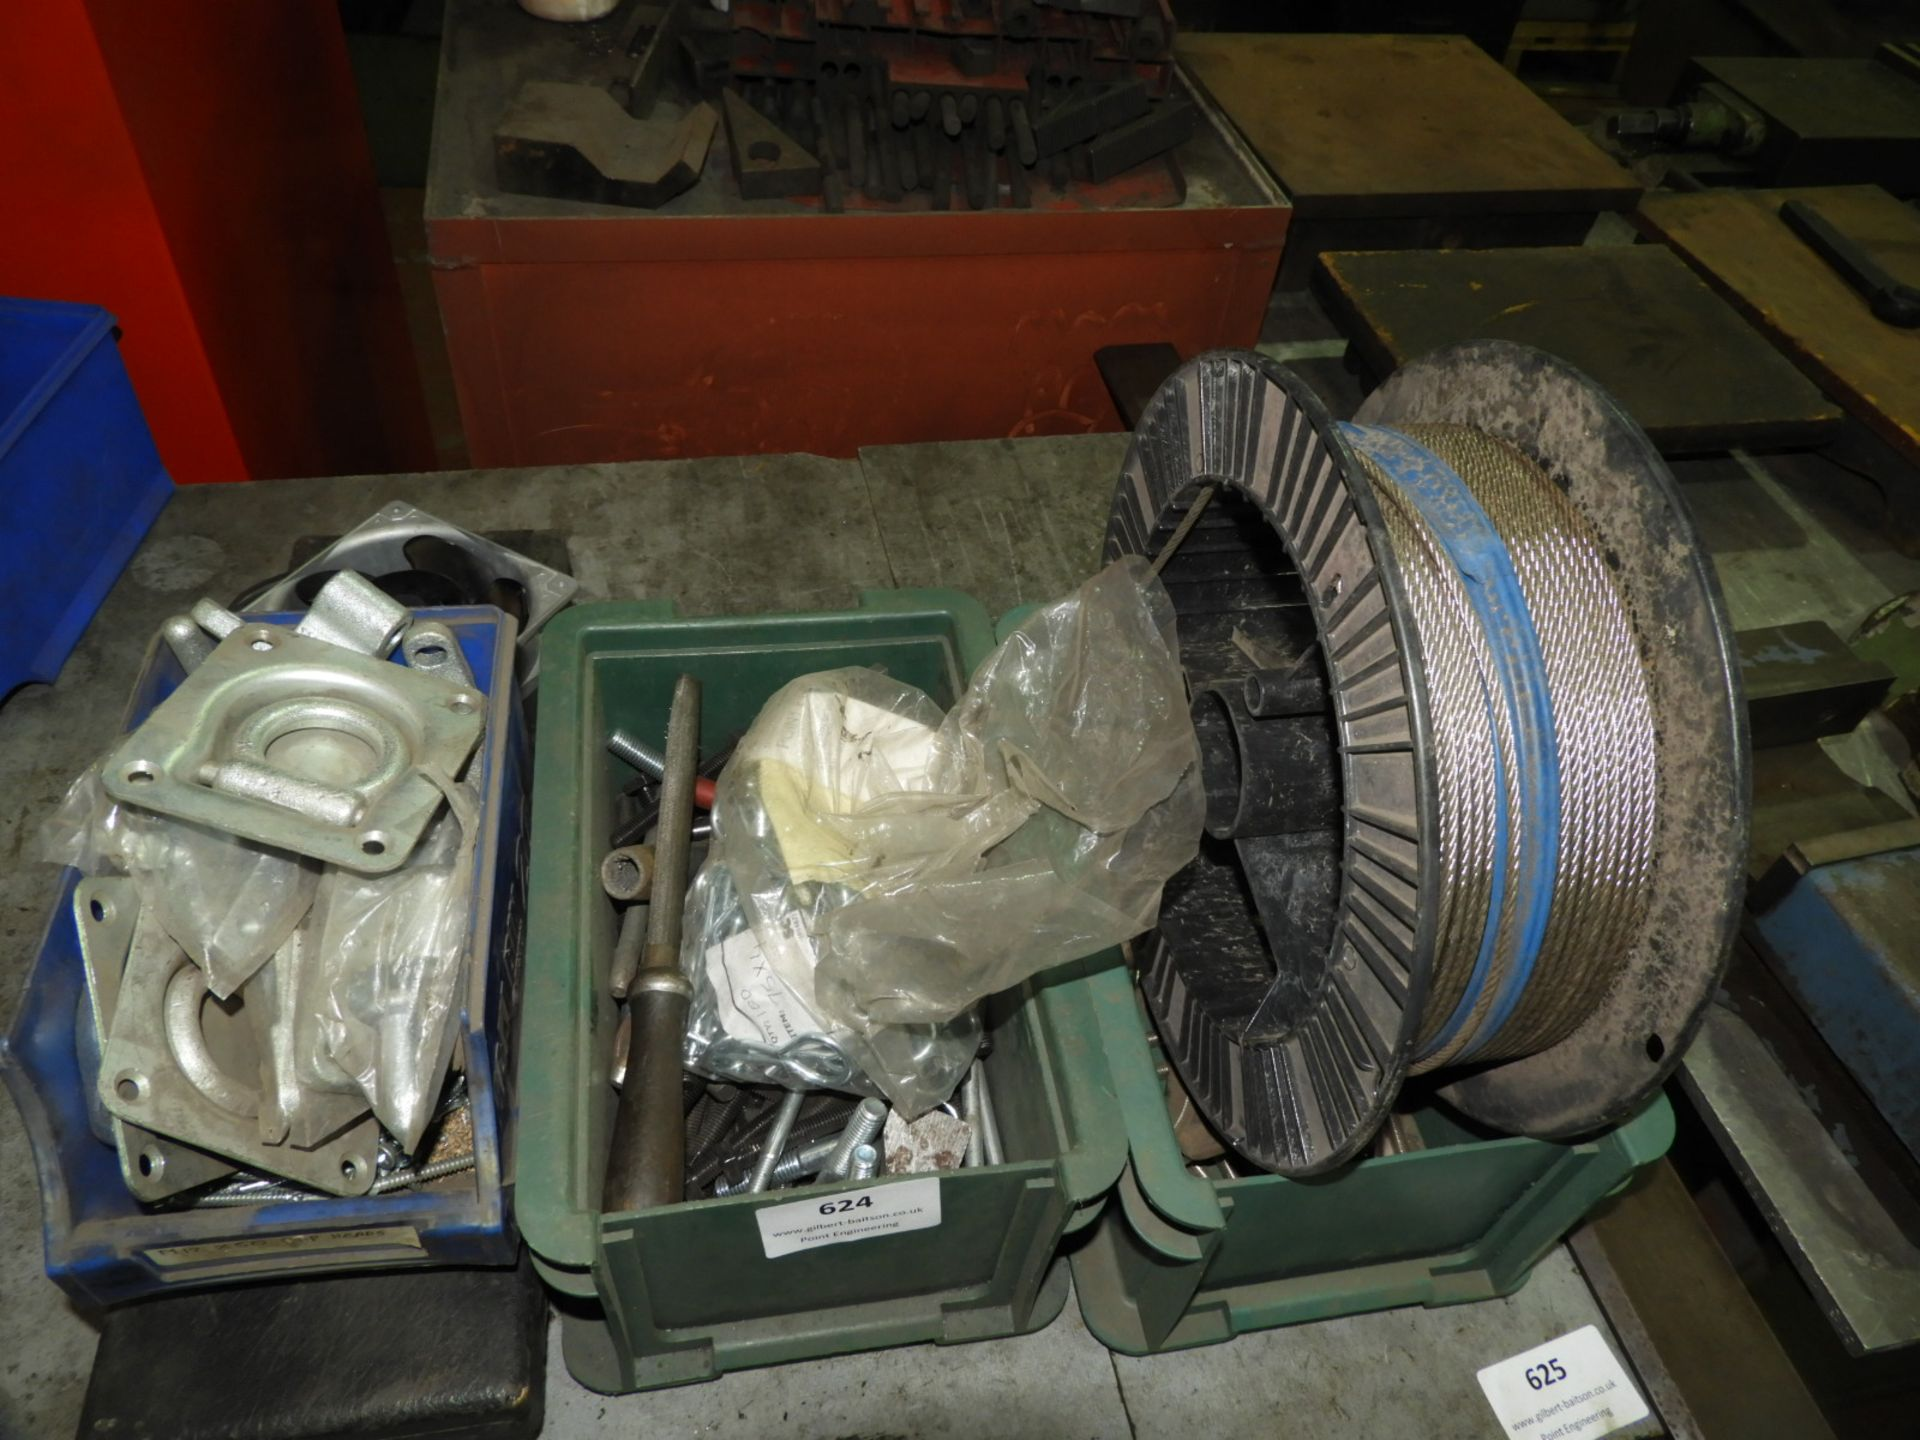 Lot 624 - *Assorted Stainless Steel Fittings, Rope, Tie Down